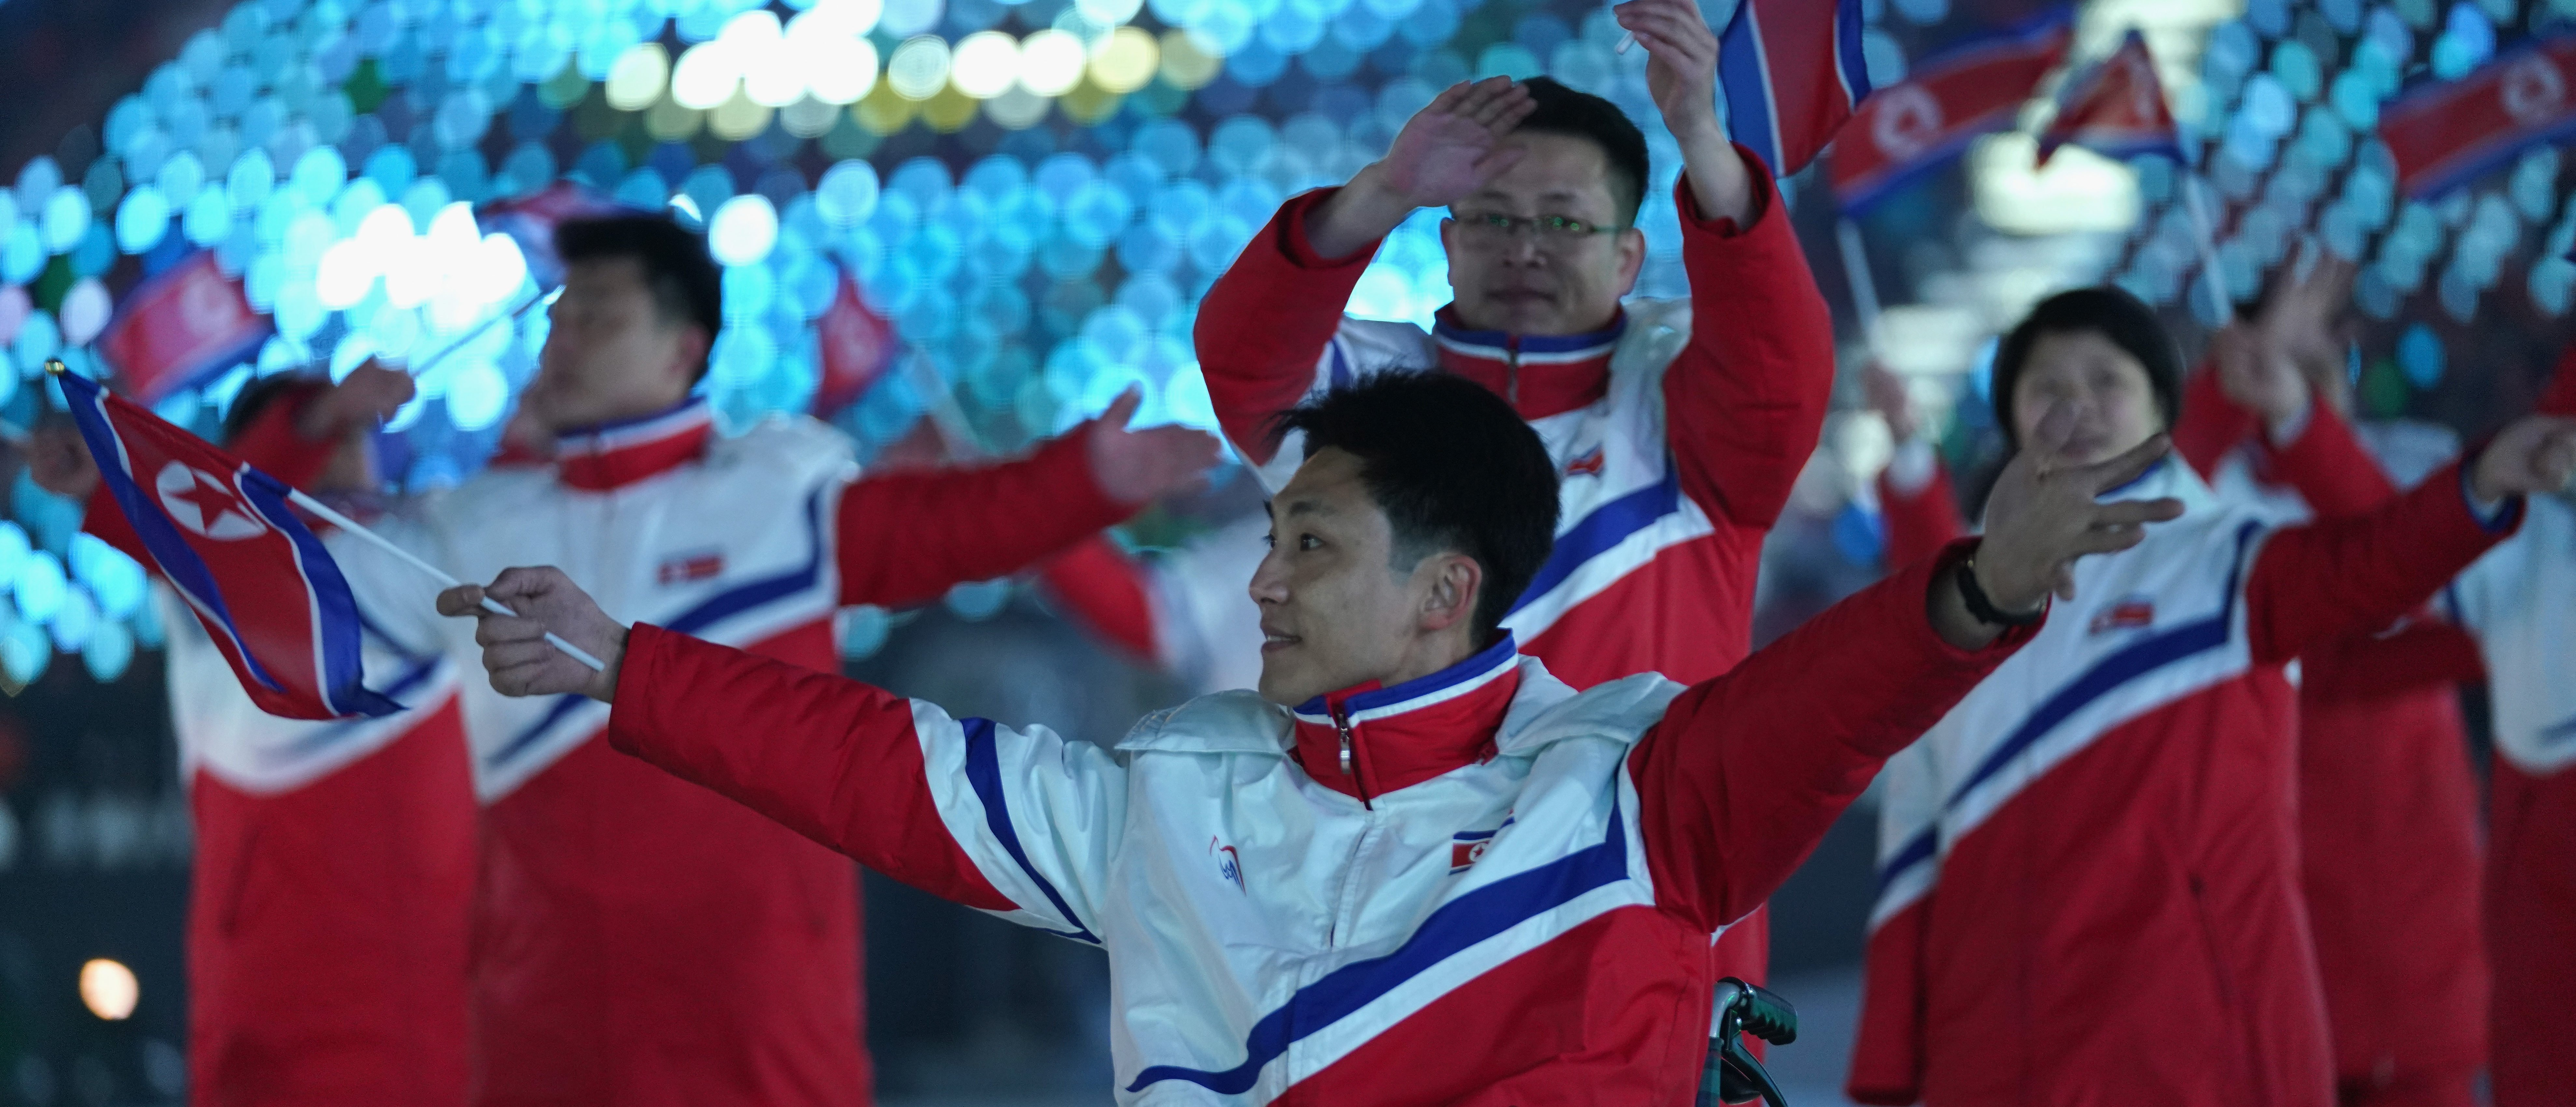 Members of North Korea enter the stadium during the opening ceremony of the PyeongChang 2018 Paralympic Games at the PyeongChang Olympic Stadium on March 9, 2018 in Pyeongchang-gun, South Korea. (Photo by Lintao Zhang/Getty Images)